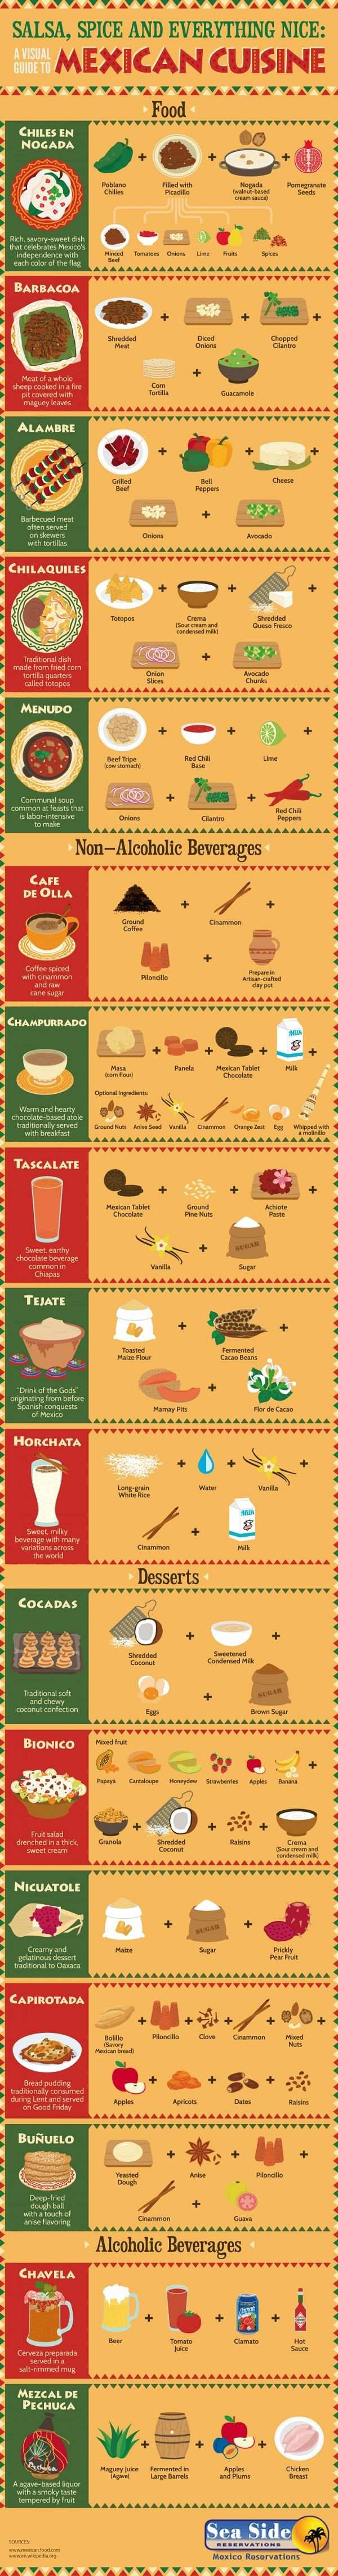 A Visual Guide To Mexican Cuisine - DesignTAXI.com Pretty close... but it isn't right at all... still it's cute :)